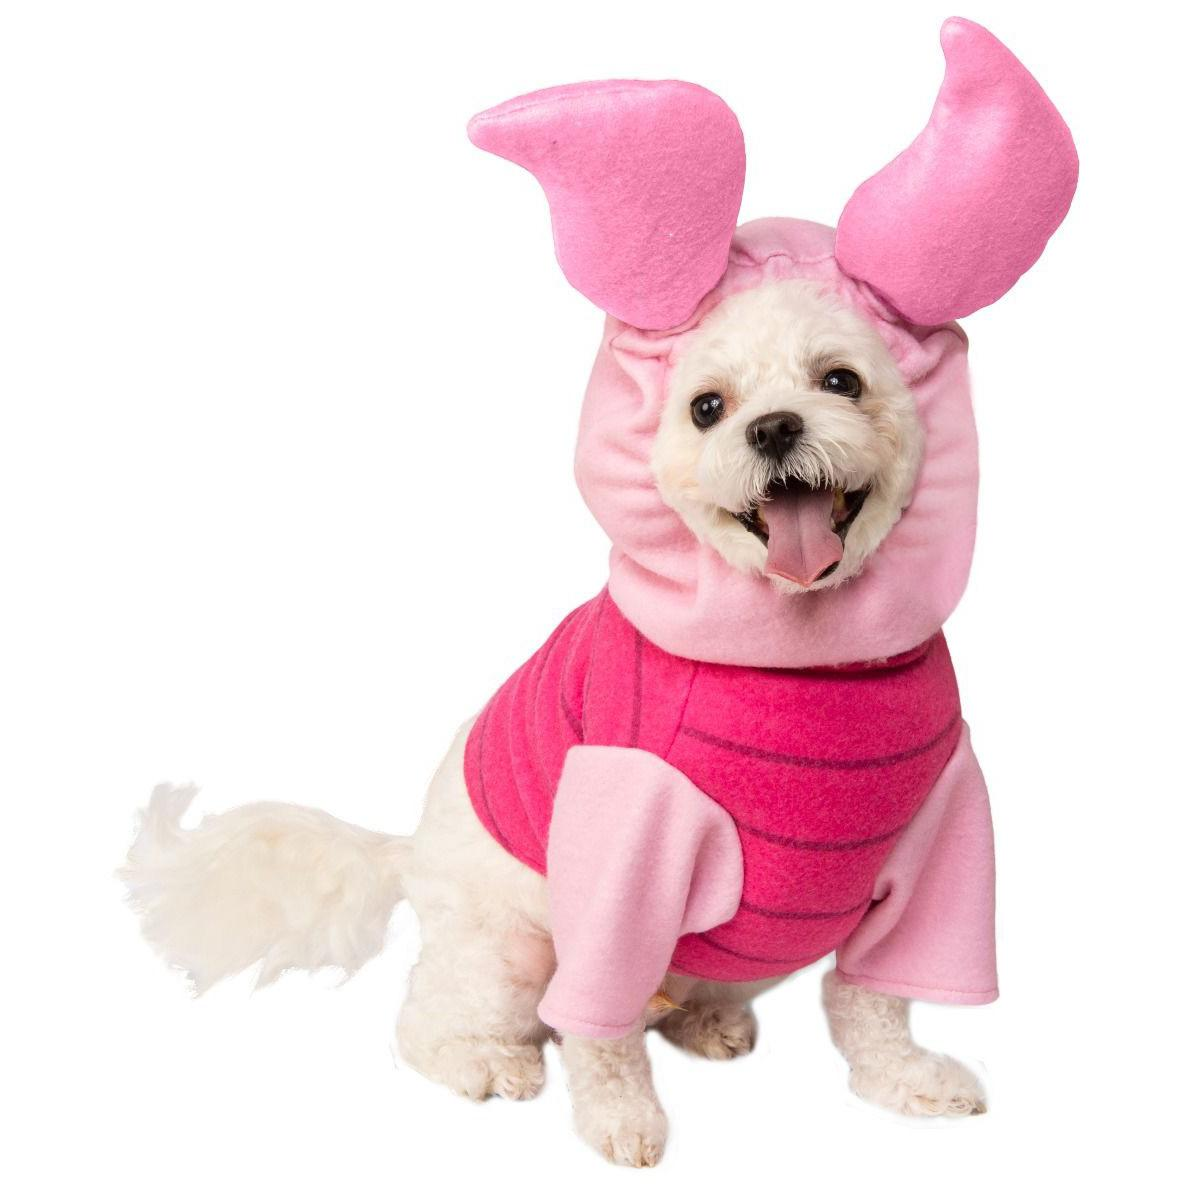 c68a7d94add5 Winnie The Pooh Piglet Dog Costume by Rubies